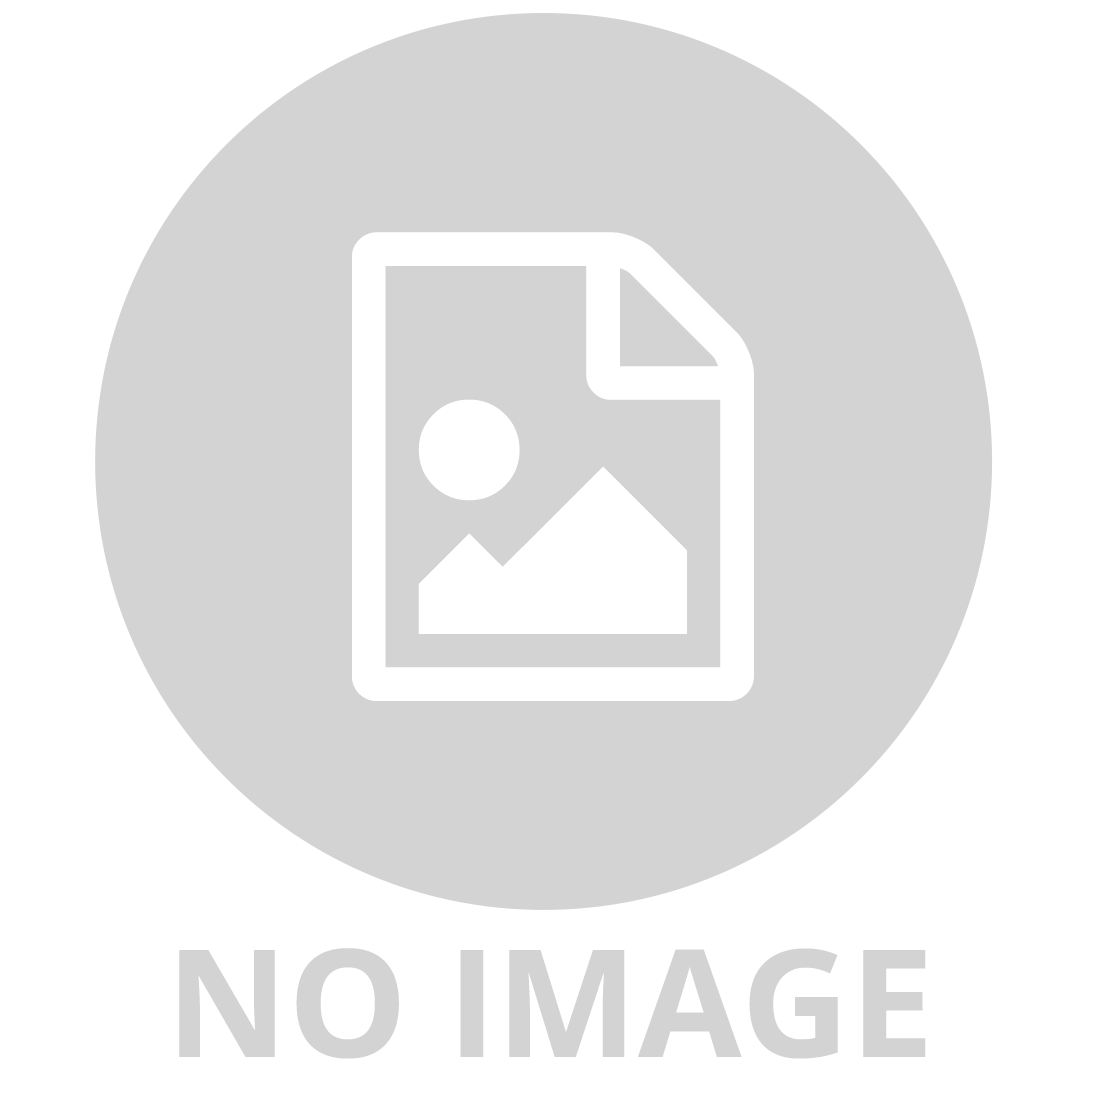 Willow 1LT Beaded Pendant Blk MG2621